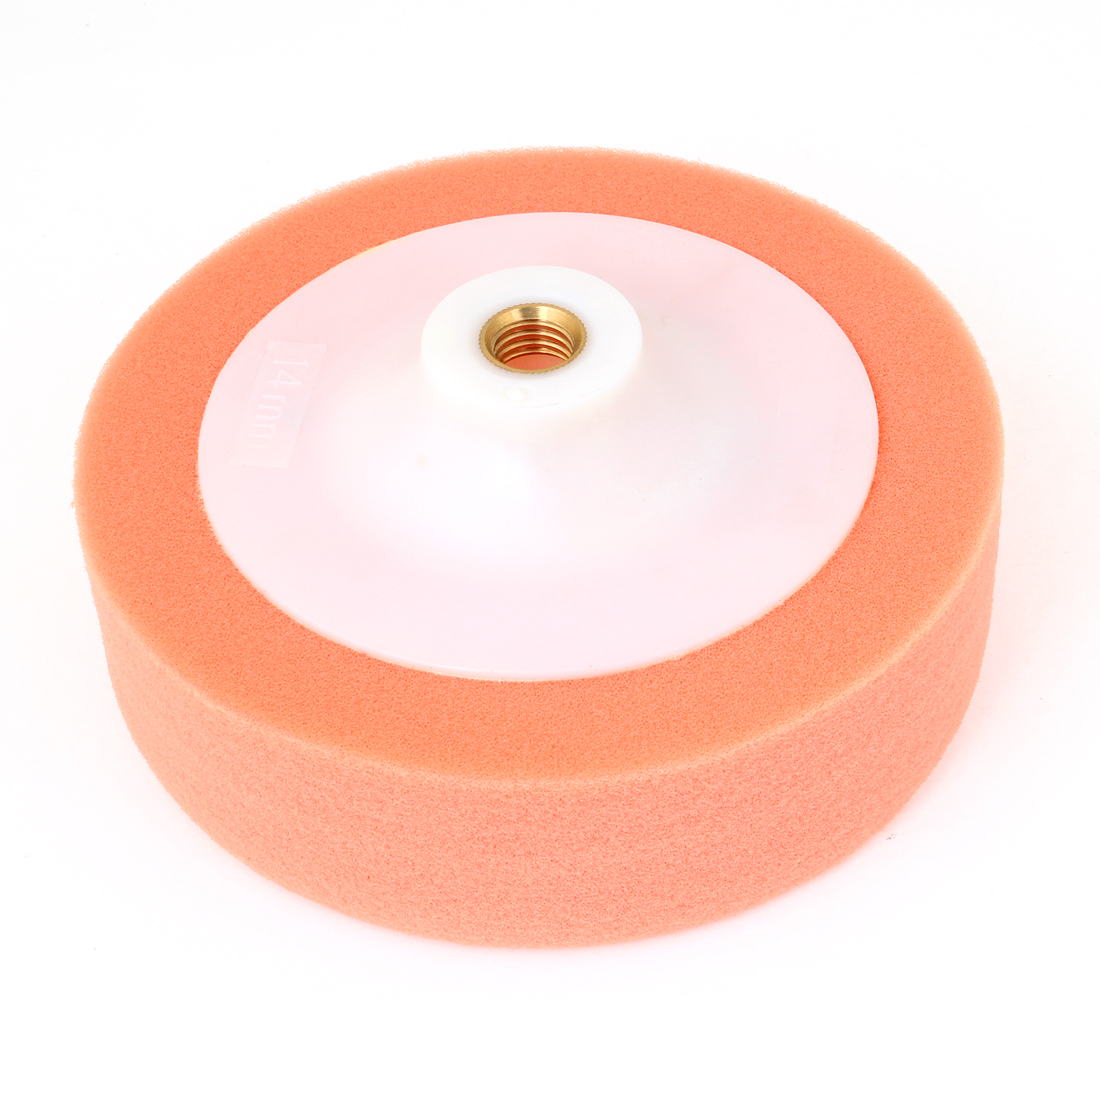 "5.8"" Diameter Soft Sponge Ball Wheel Polisher Tool Orange for Car"